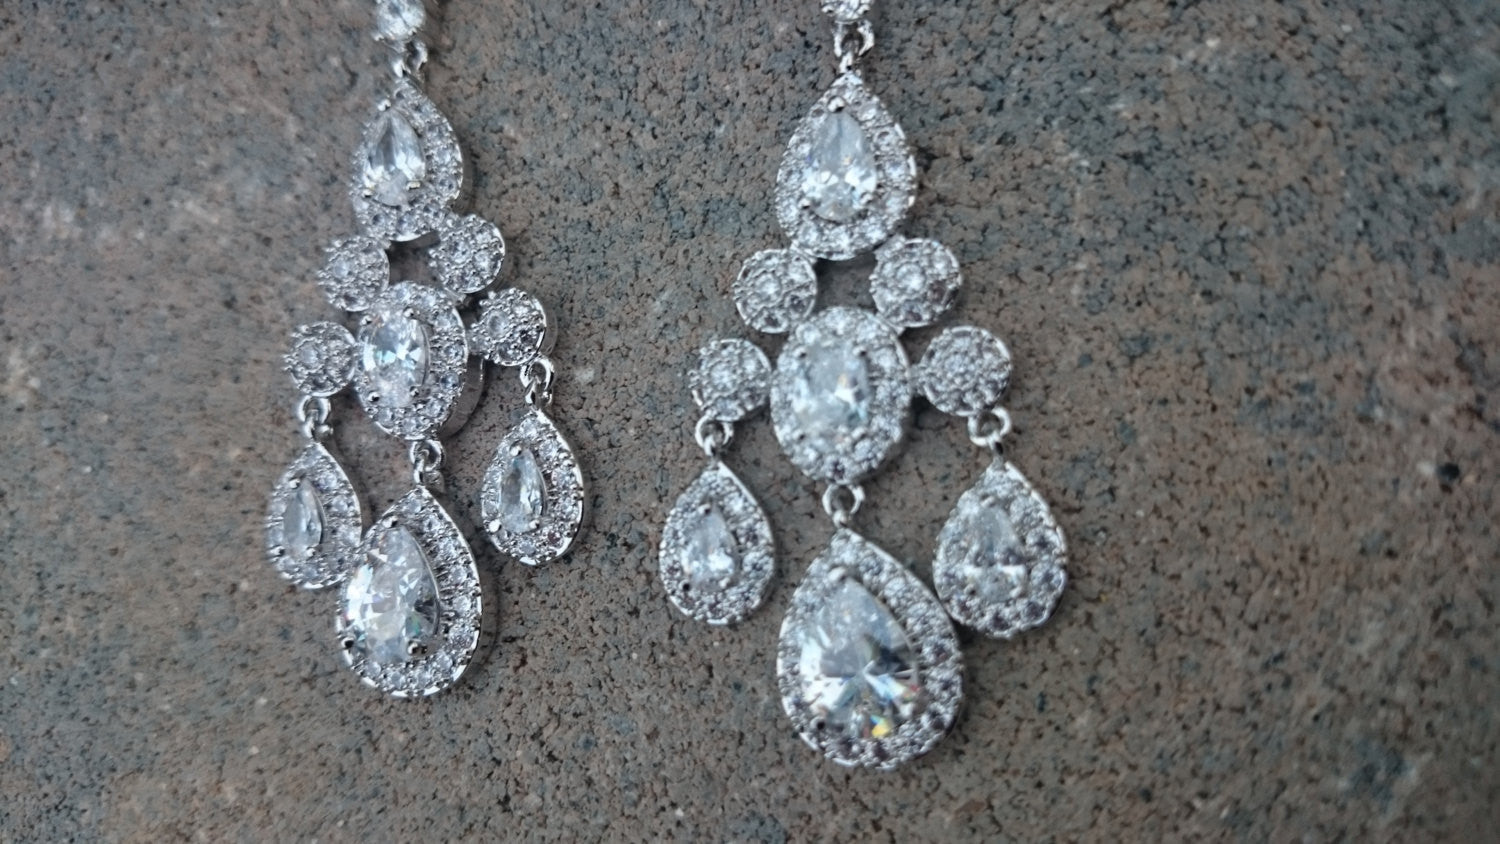 Bridal Earrings, CZ Bridal Chandelier Earrings, Pageant Earrings, Statement Luxury Earrings, Pear Oval Drop Dangle Earrings, Bridesmaid Gift